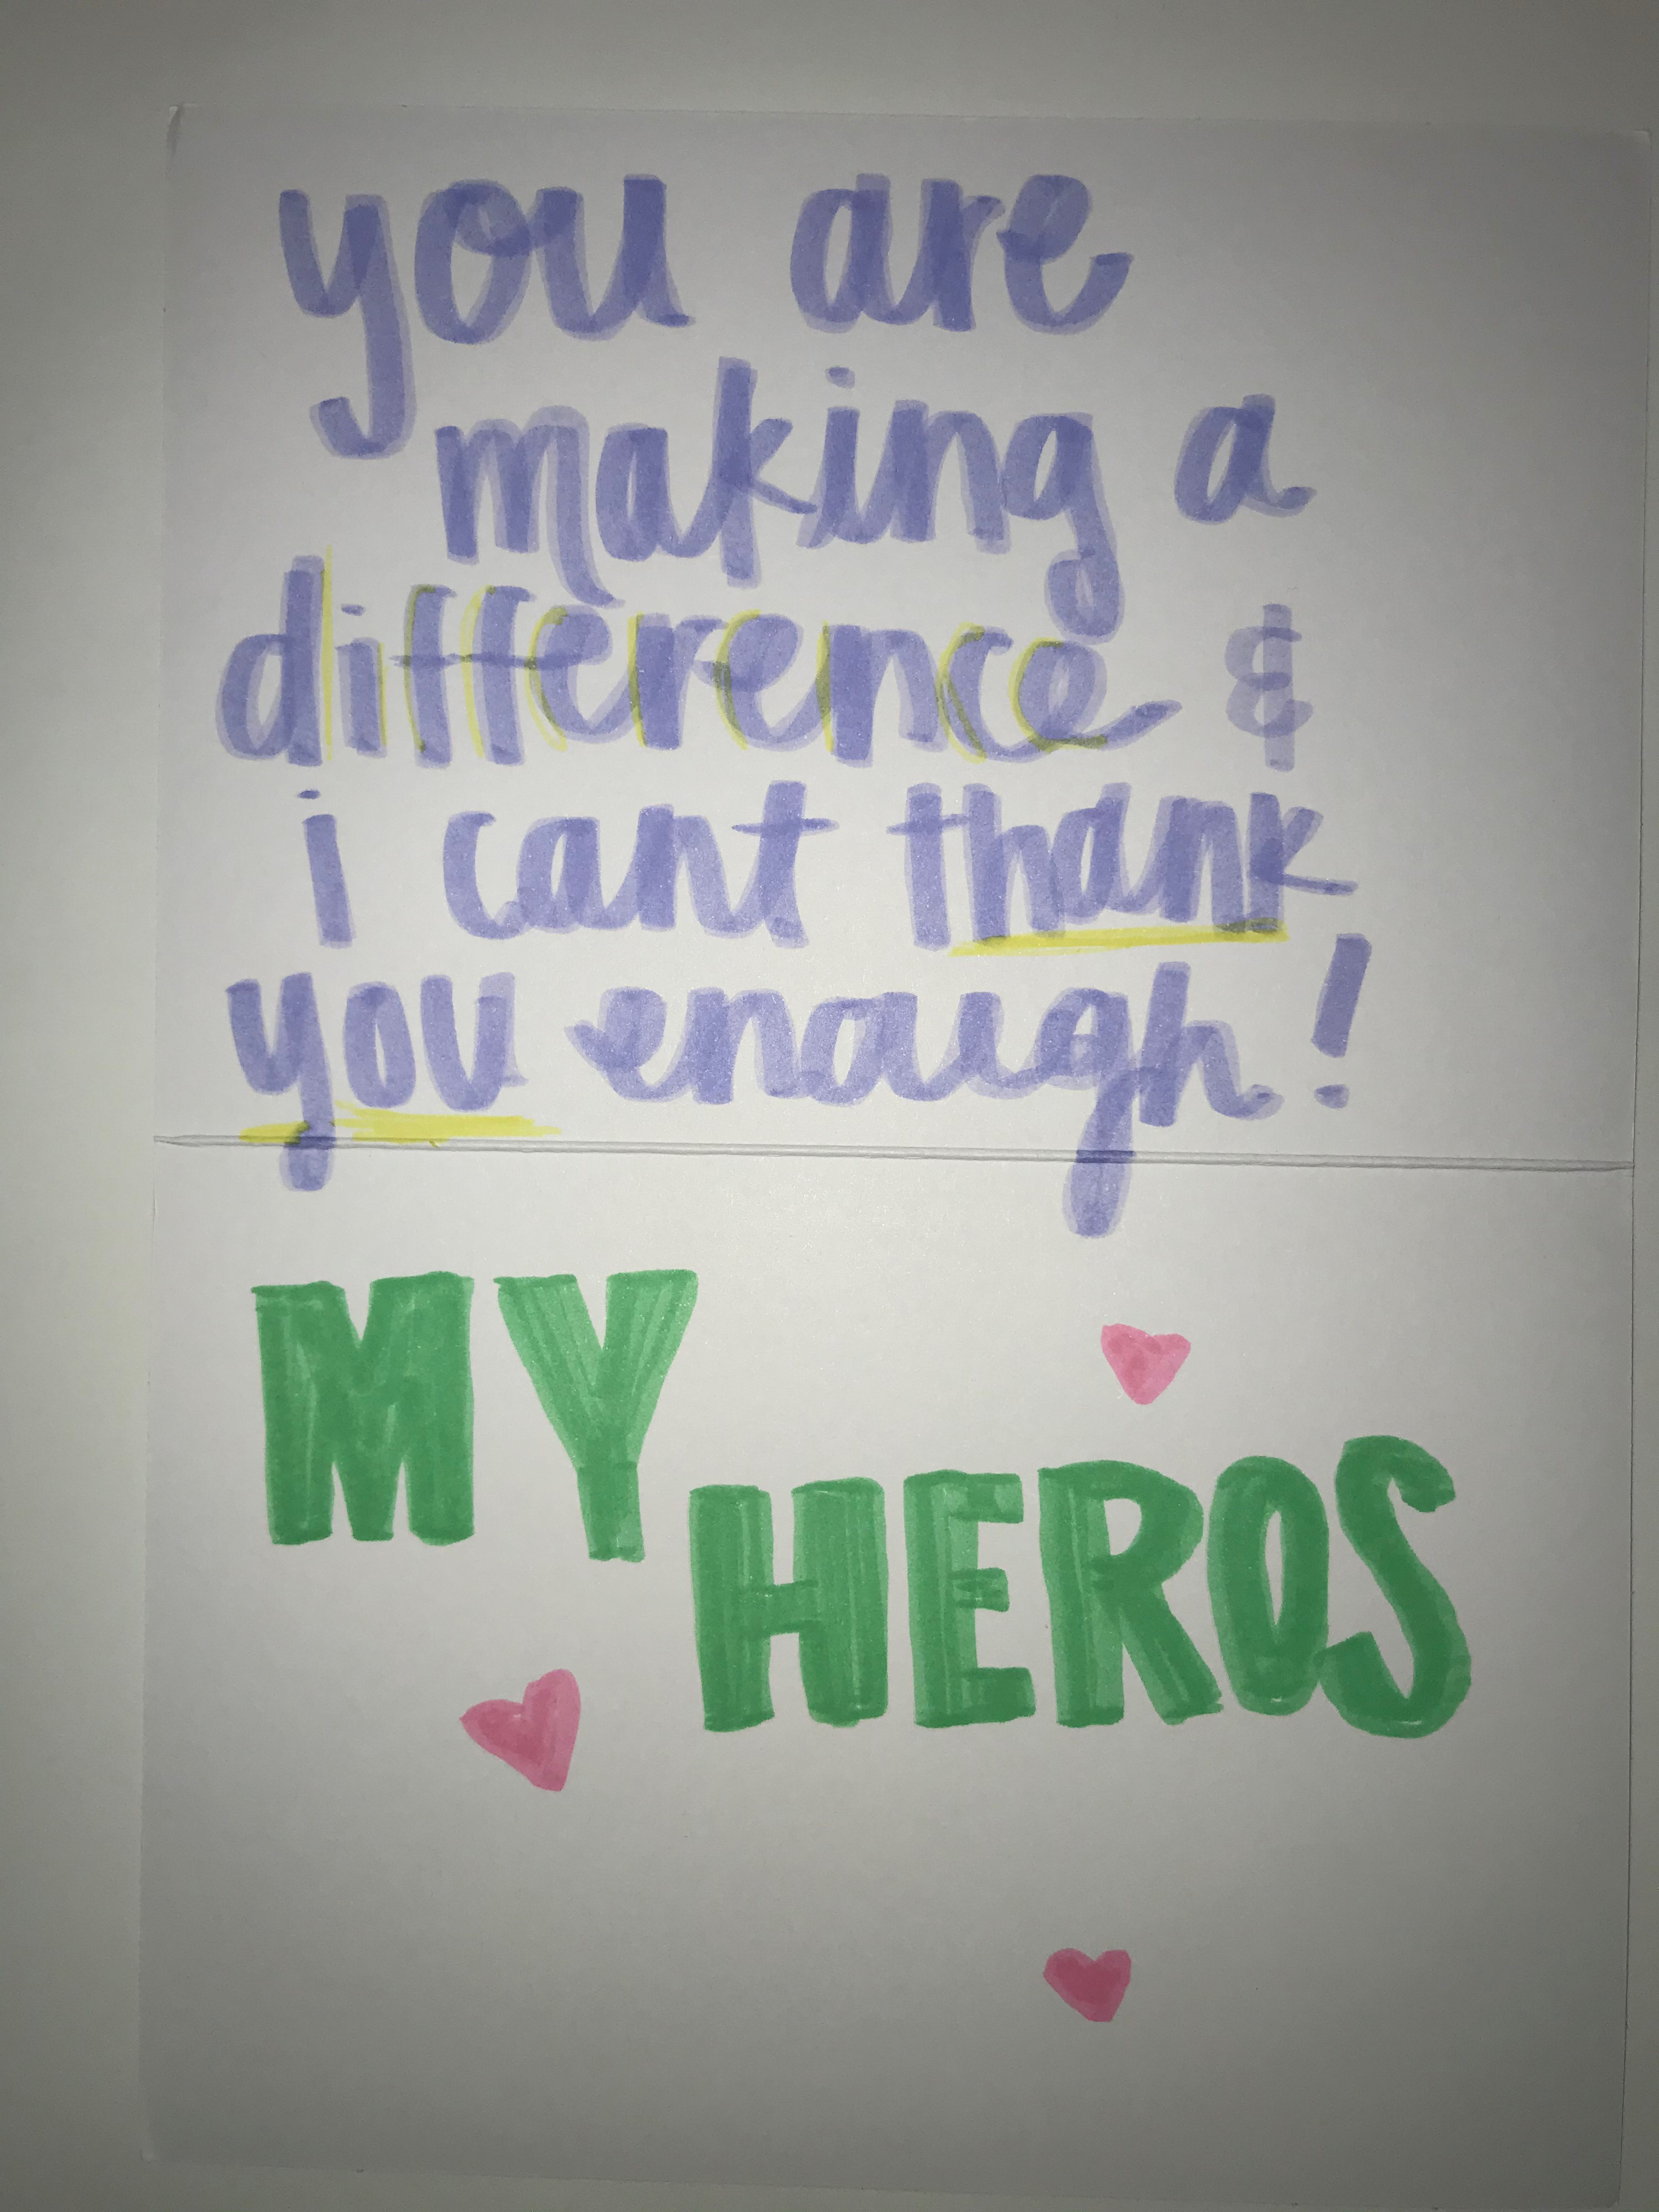 You are making a difference and I can't thank you enough! My heroes.